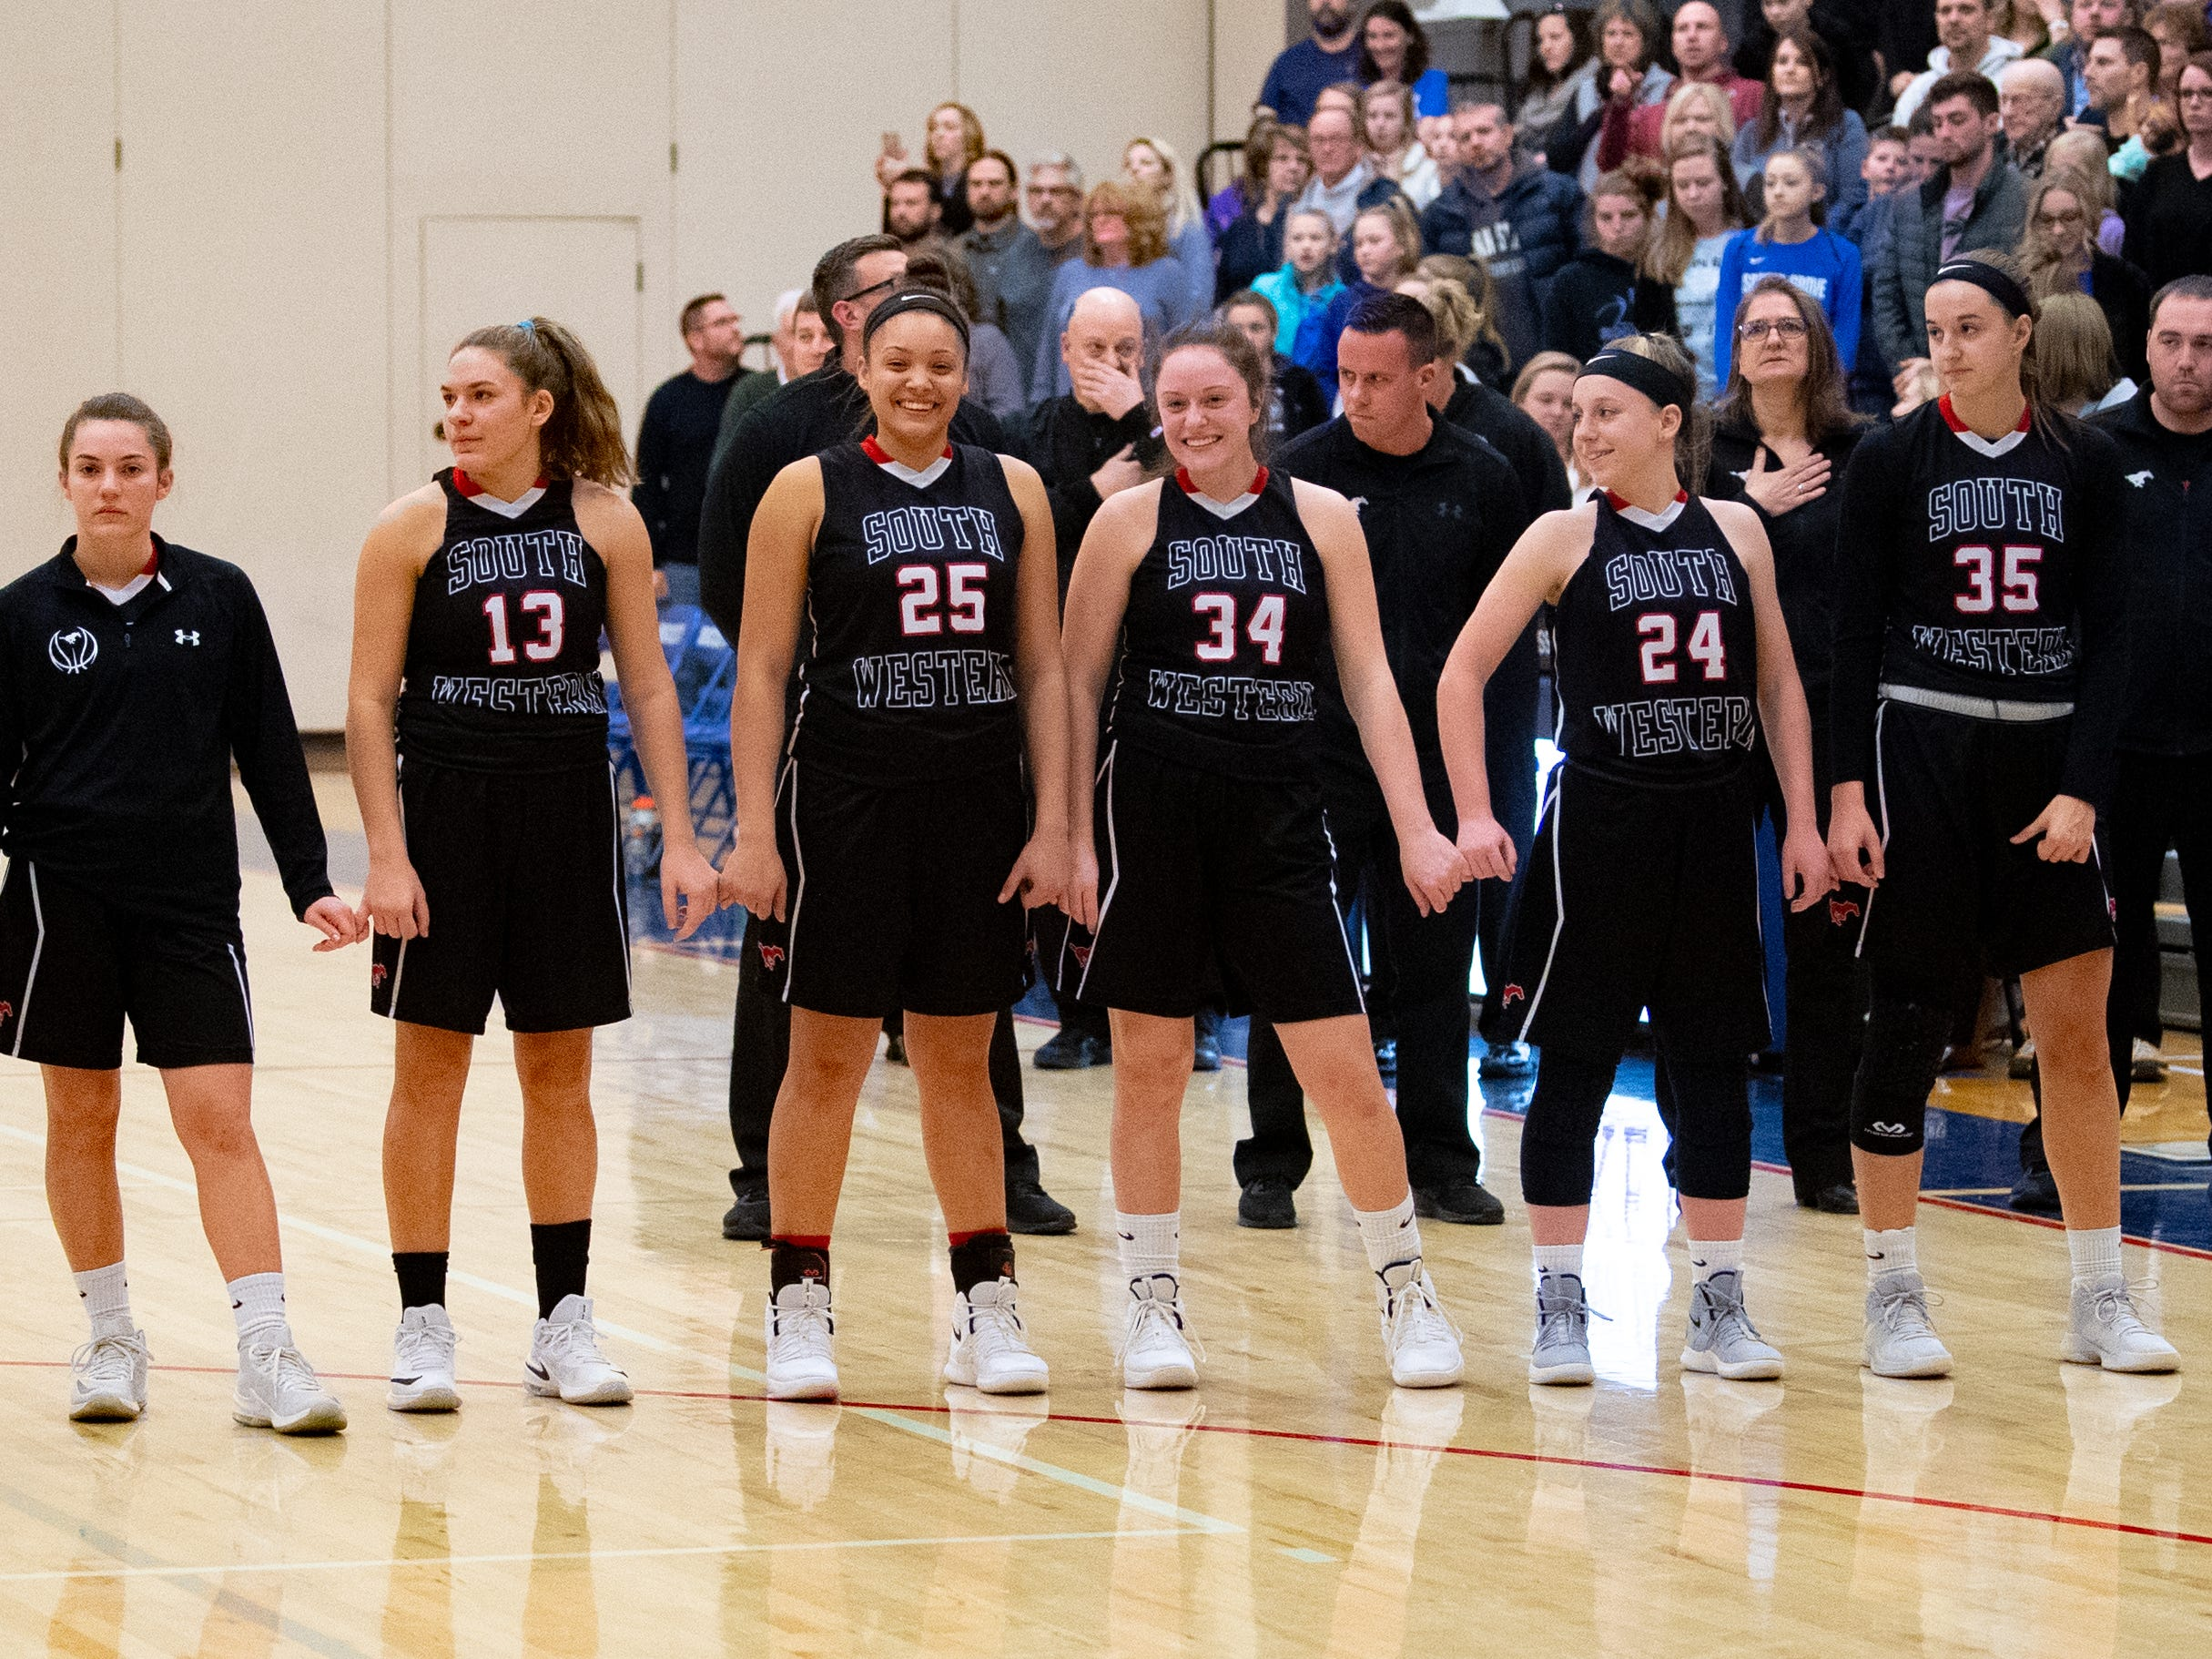 South Western prepares for the singing of the National Anthem during the girls' basketball game between Spring Grove and South Western at Spring Grove Area High School, Friday, January 11, 2019. The Rockets defeated the Mustangs 51 to 38.